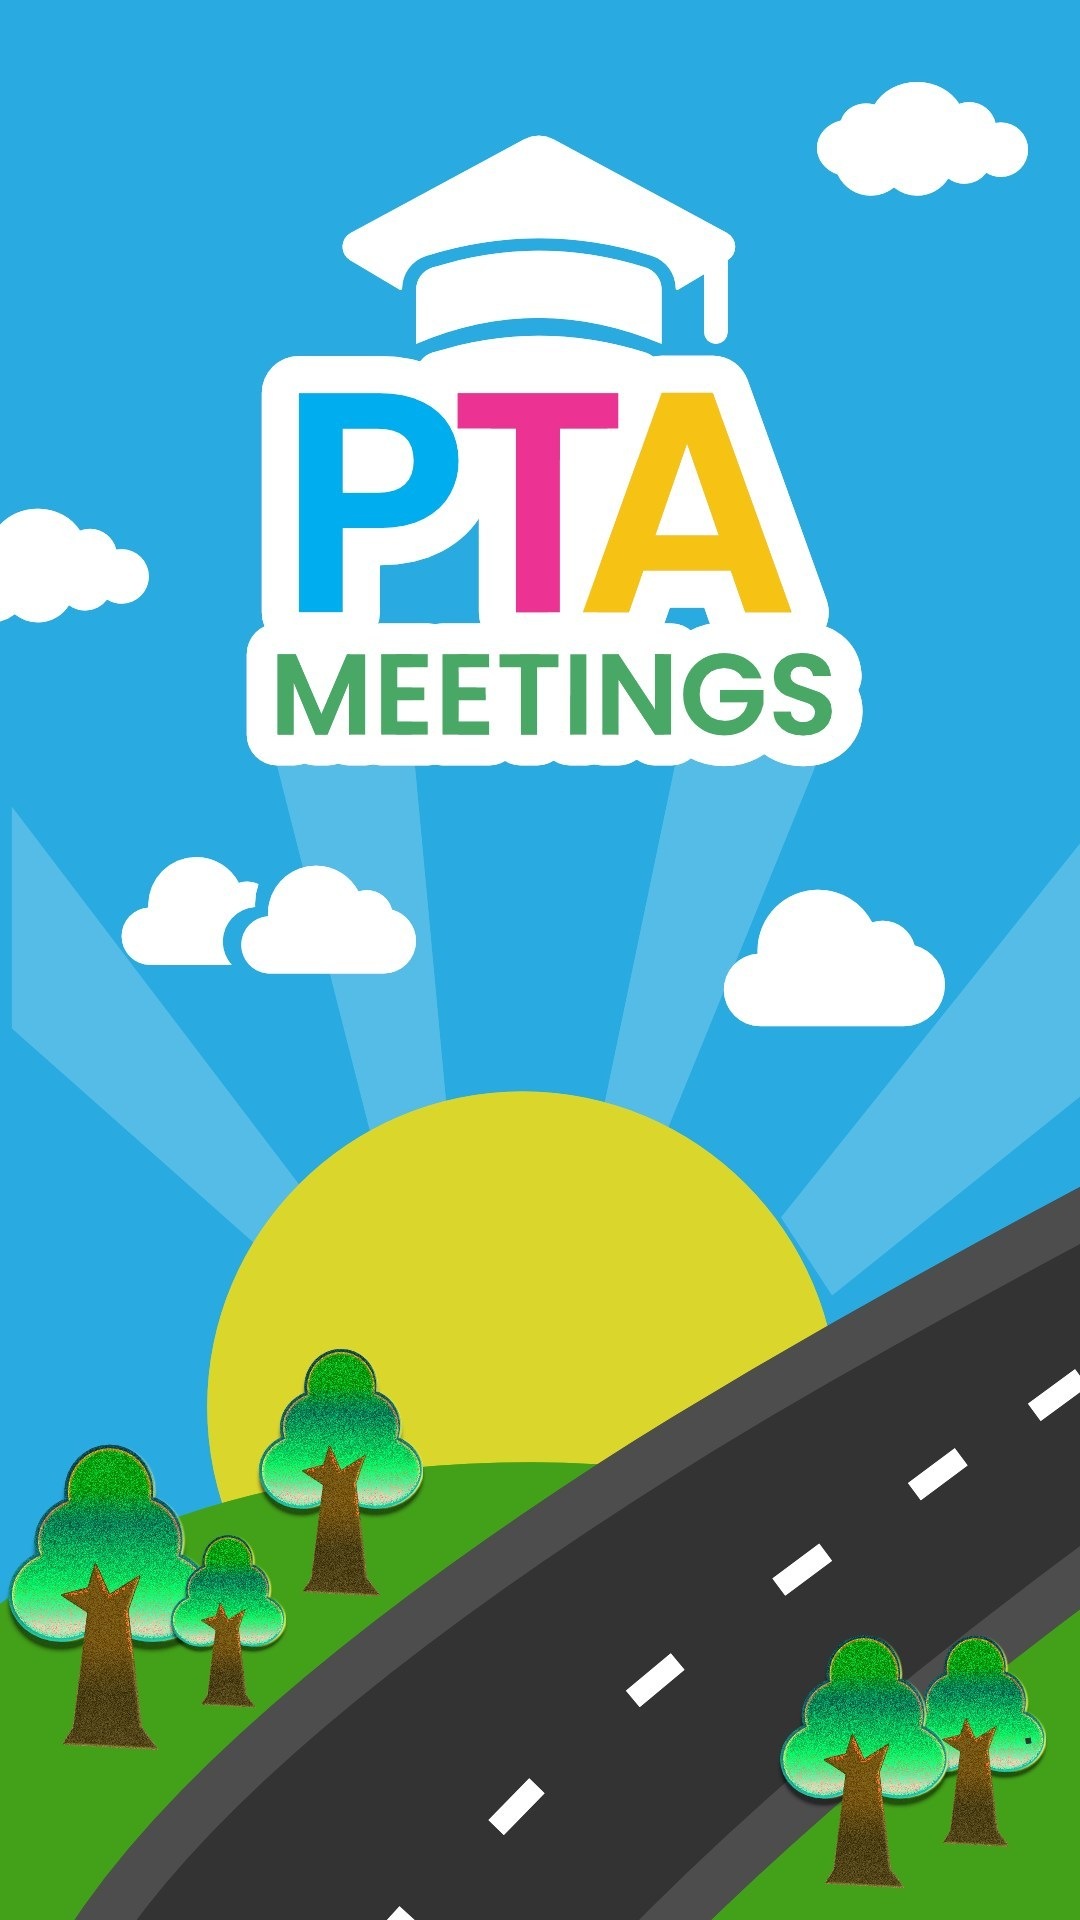 NEW EDUCATION COMMUNICATION PLATFORM PTA MEETINGS LAUNCHES FOR 2021